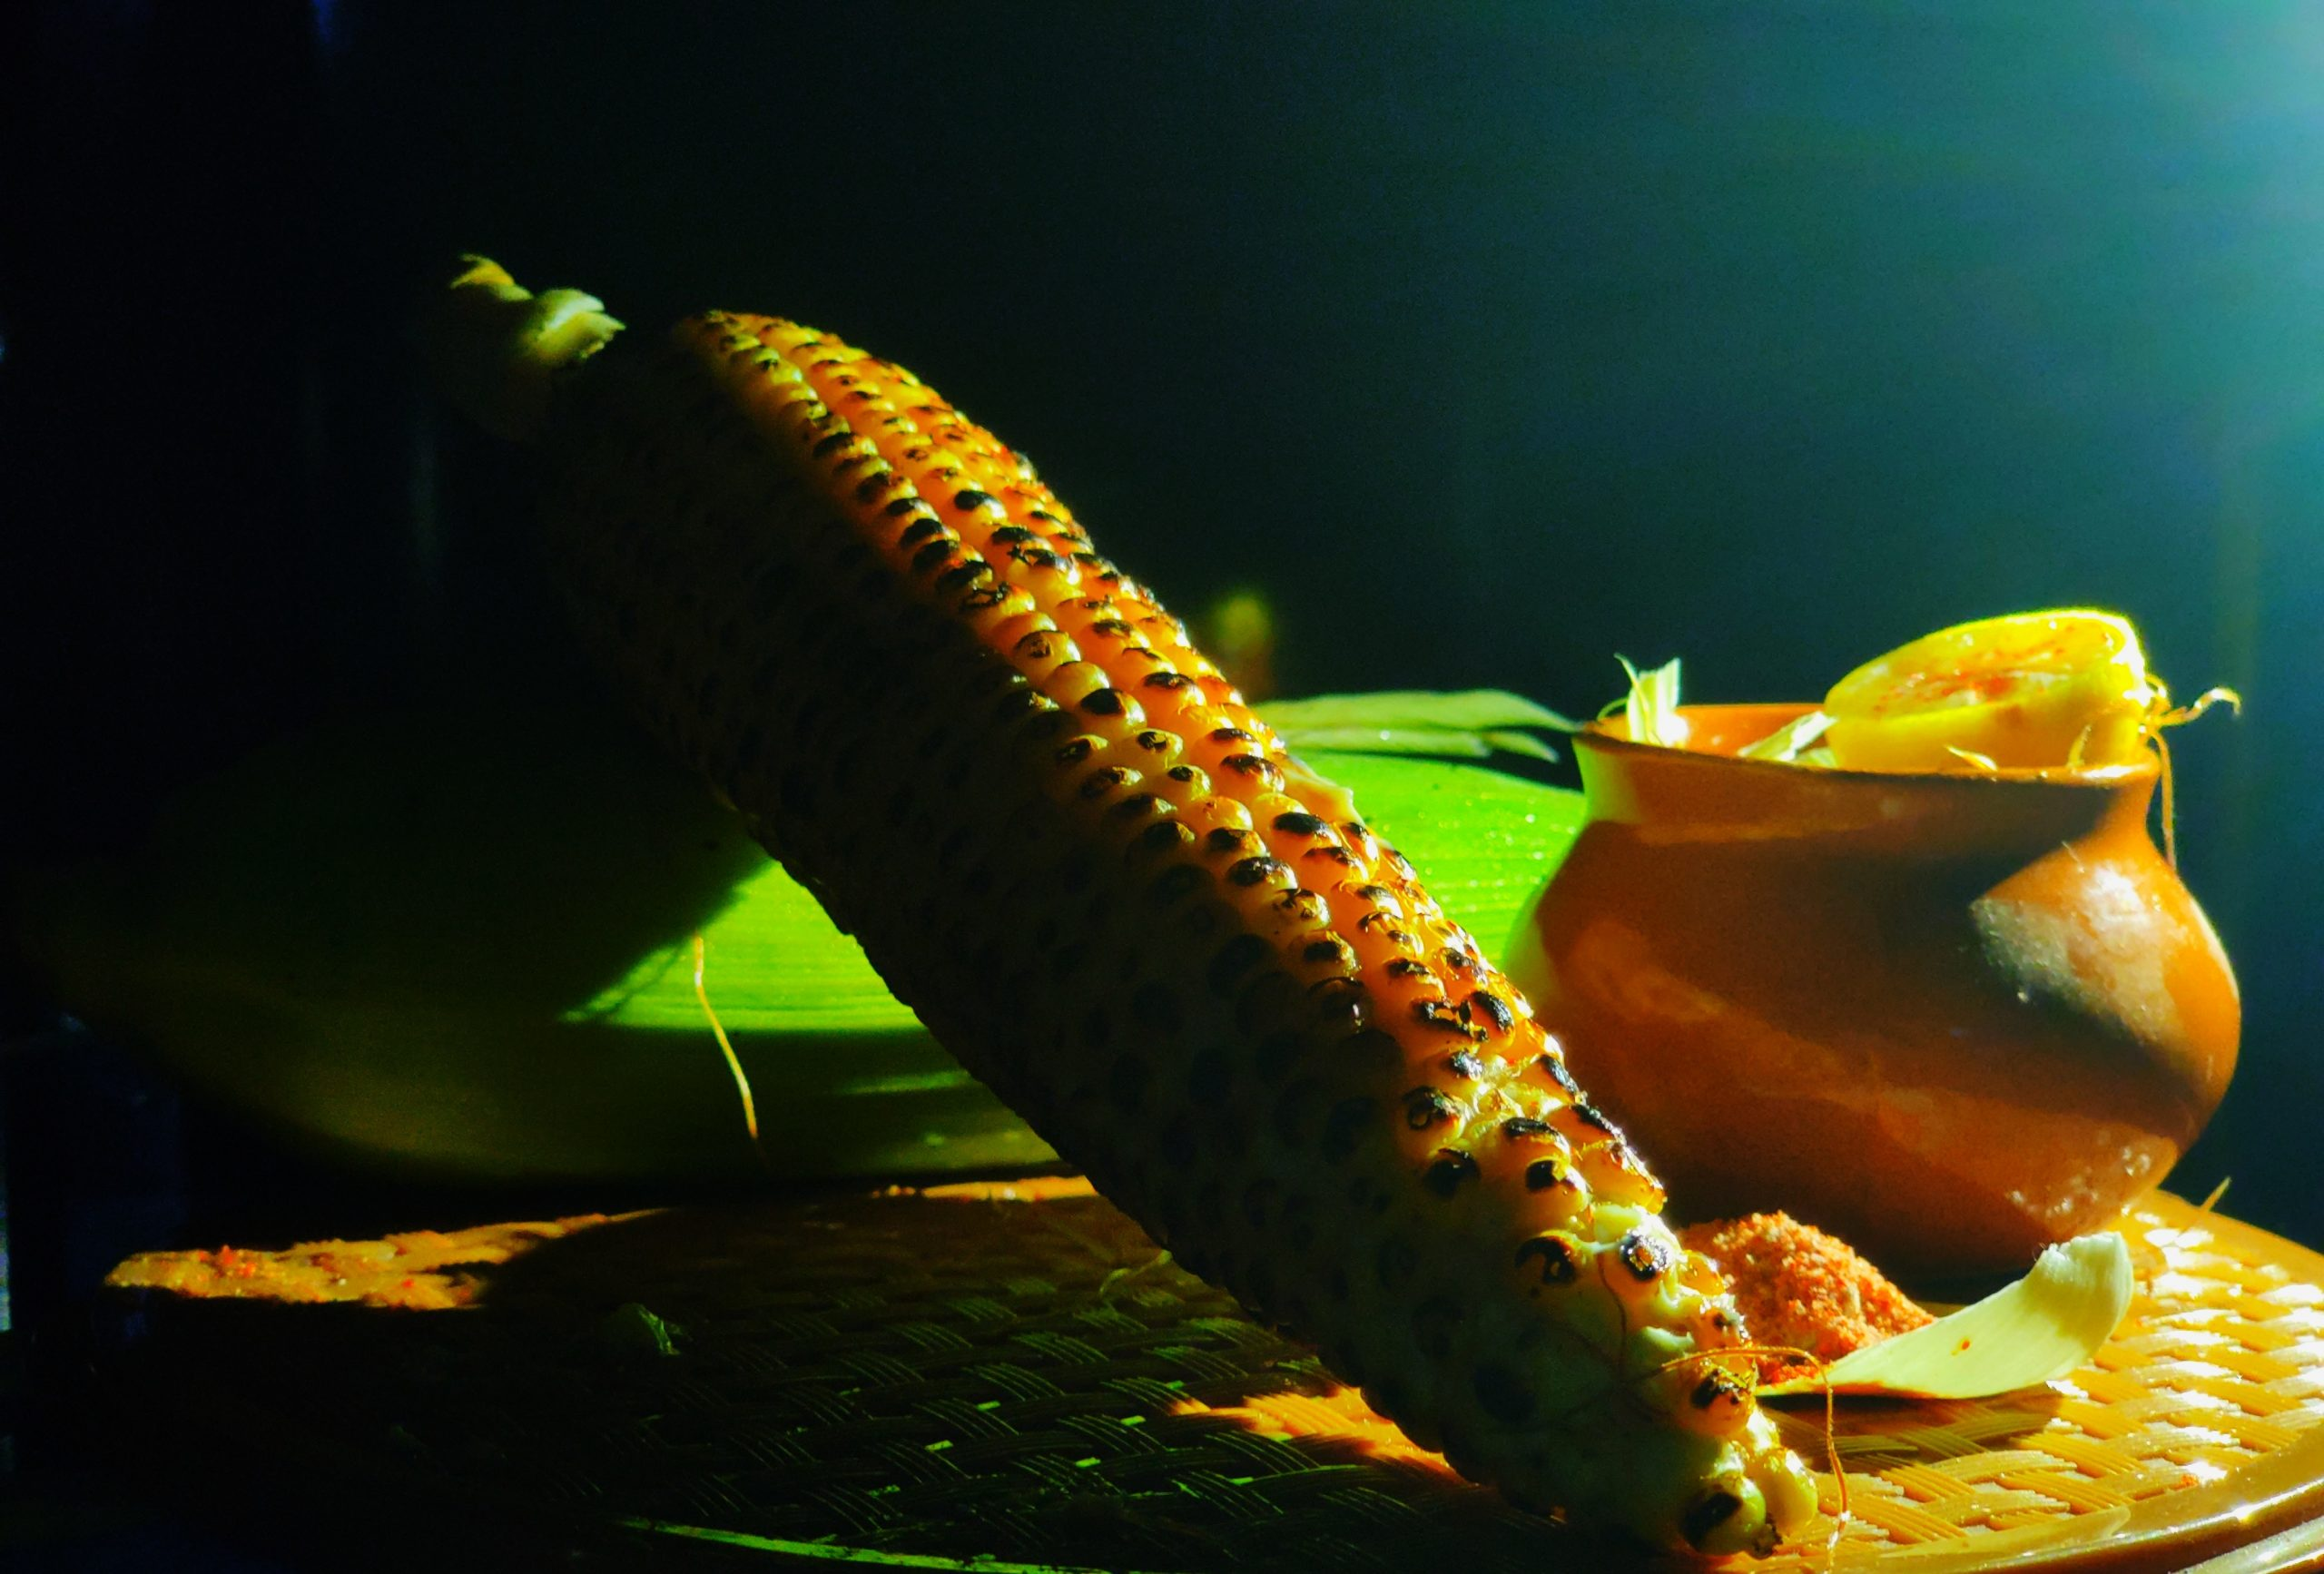 Masala corn maize